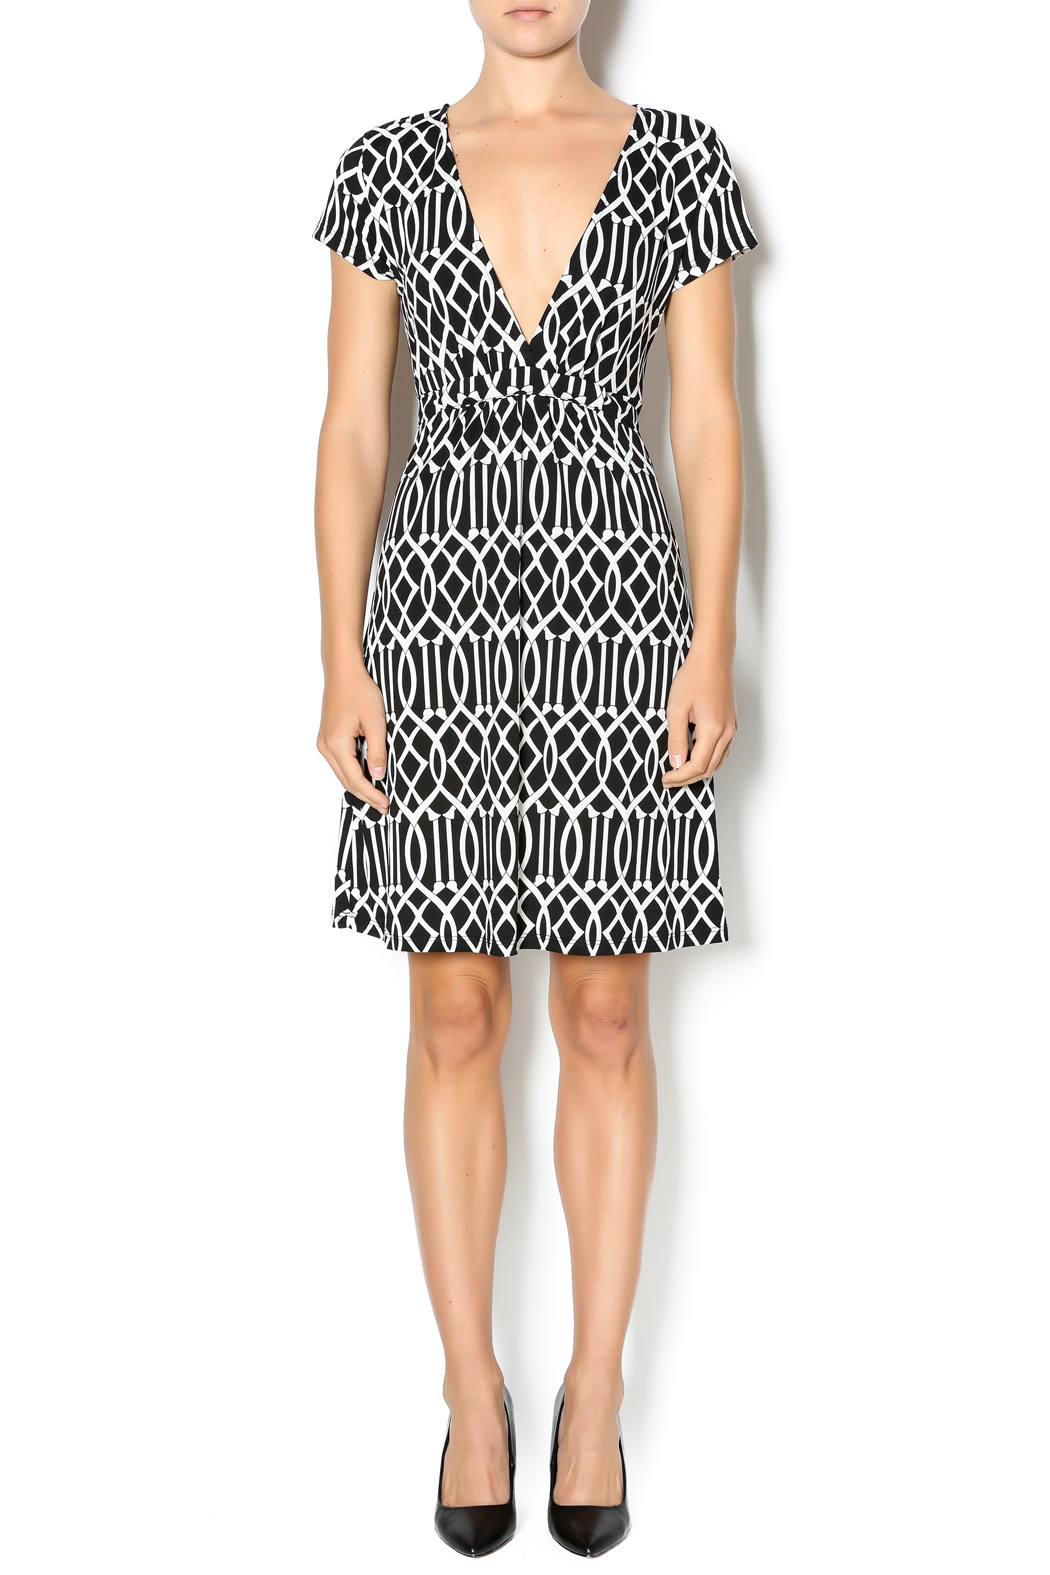 MT Collection Geometric Print Dress - Front Full Image